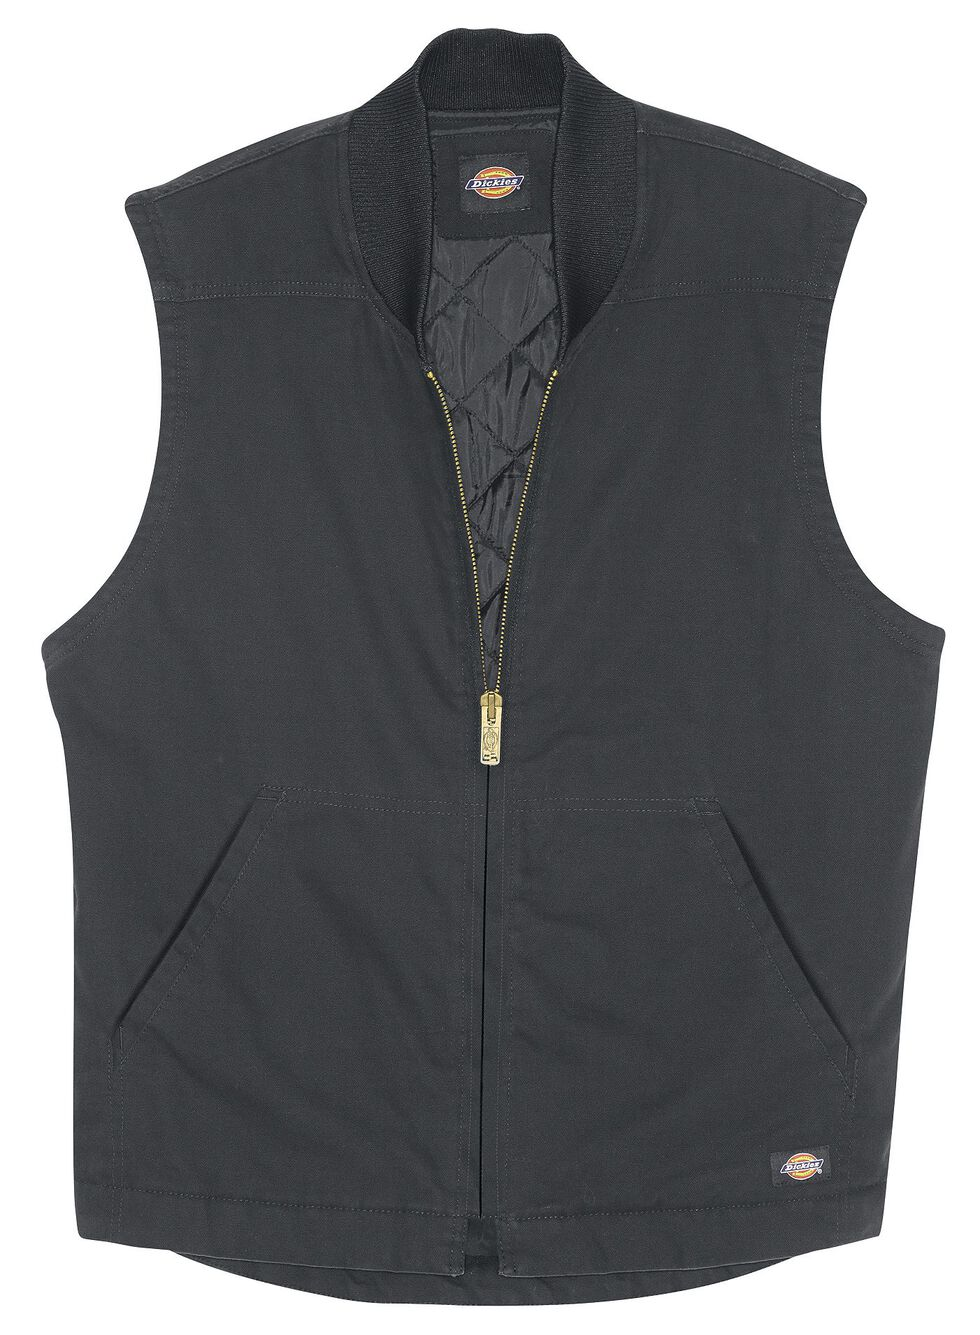 Dickies Sanded Duck Insulated Vest, Black, hi-res